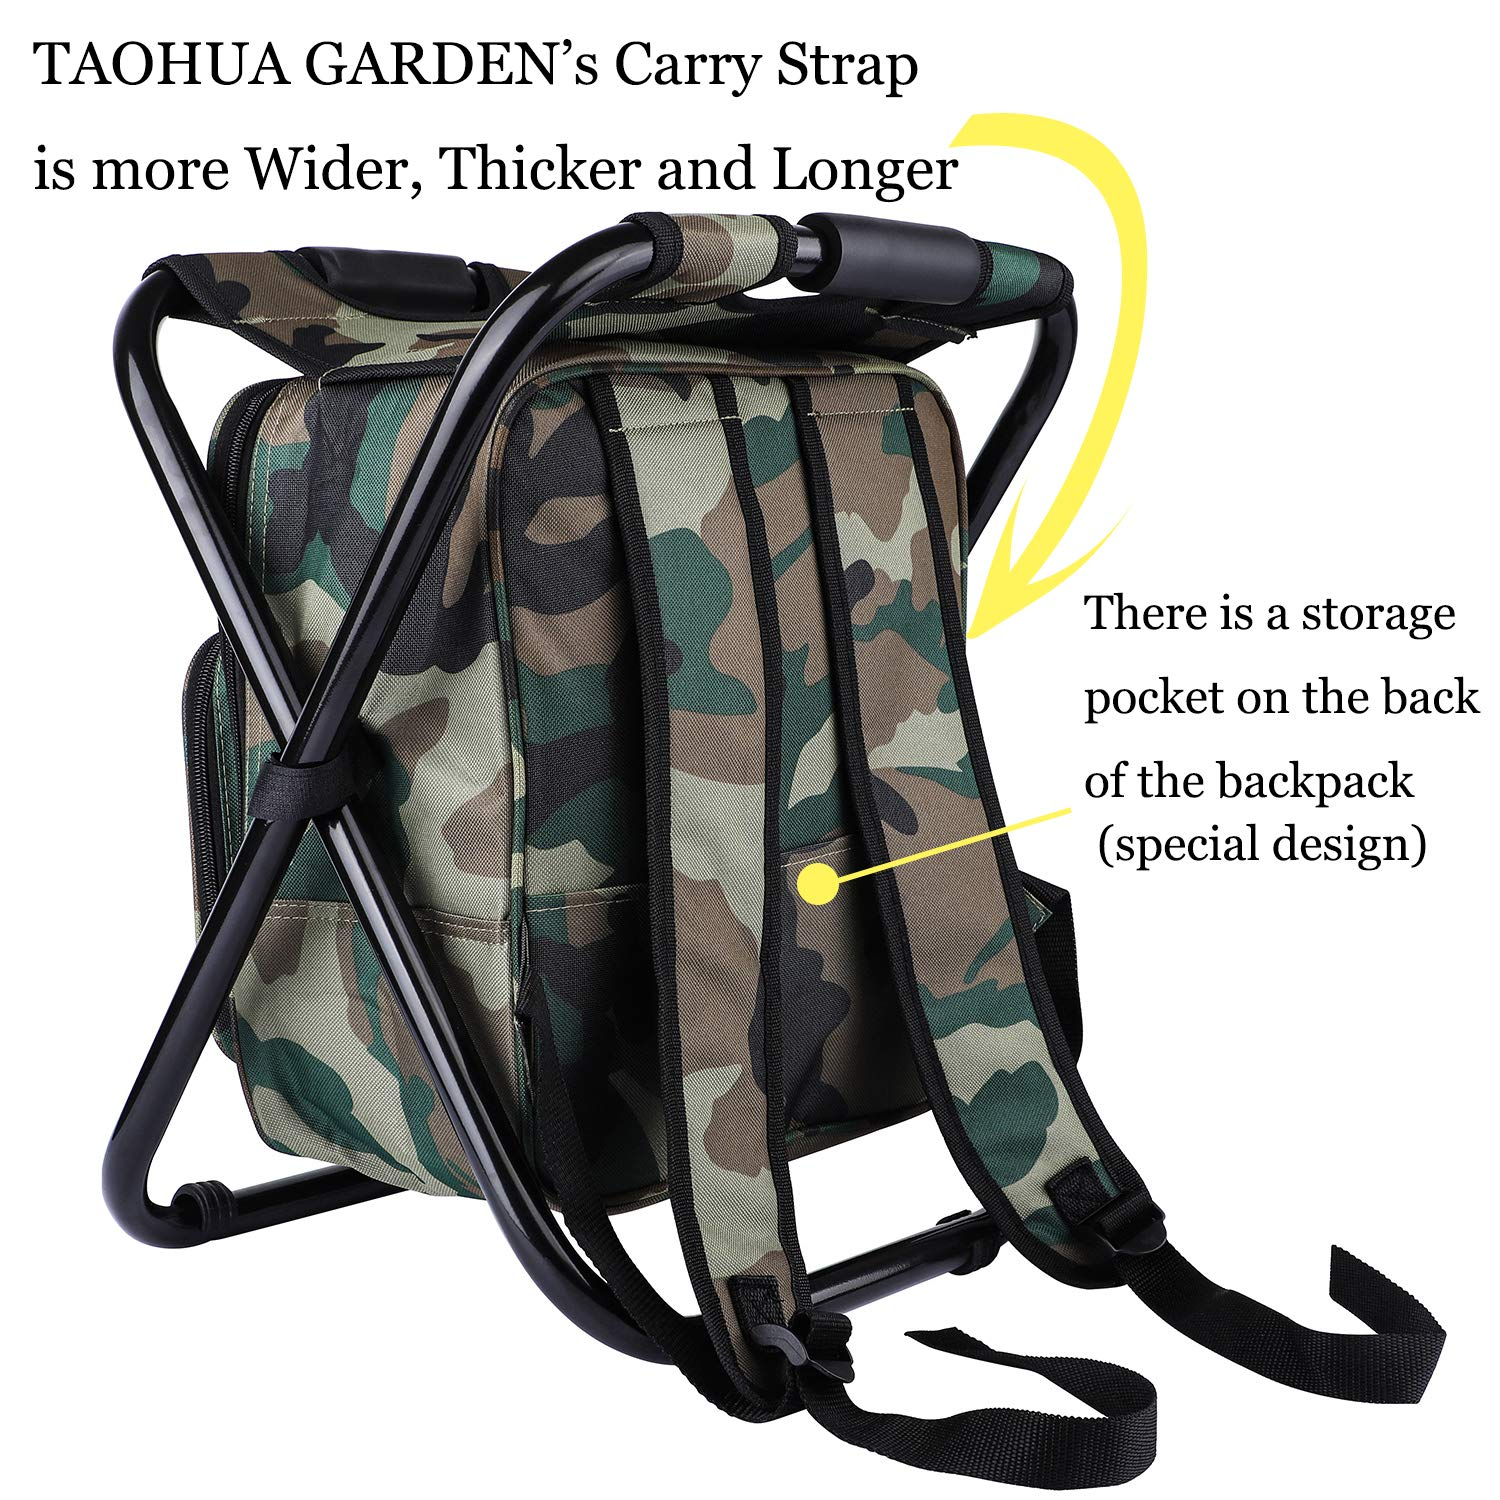 TAOHUA GARDEN Folding Camping Chair Backpack with Cooler Insulated Picnic Bag Camping Stool Oxford Fabric Hiking Fishing Travel Beach BBQ Outdoor activies